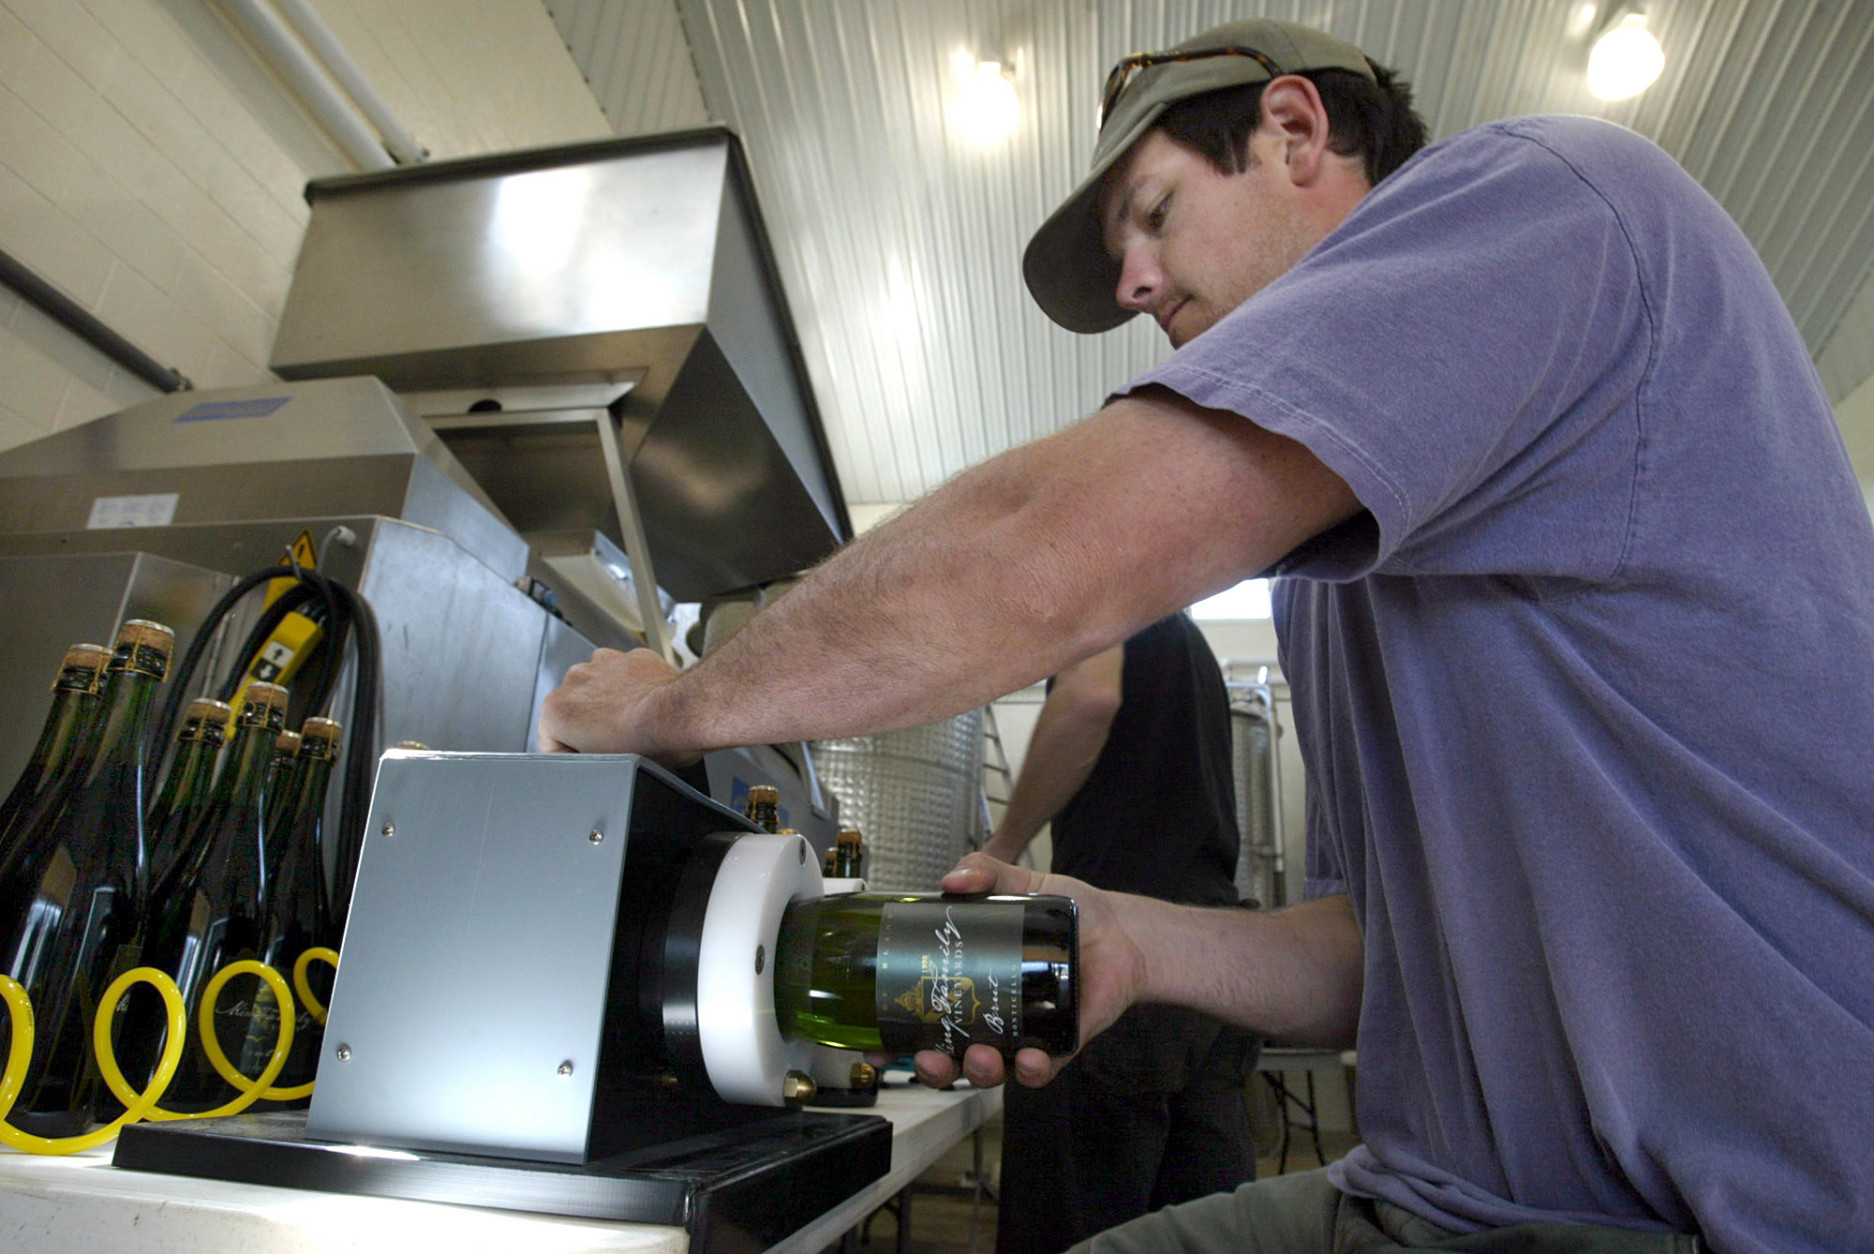 Carrington King labels a bottle of champagne in the tank room at the King Family Vineyards on Wednesday, May 7, 2008, in Crozet, Va.  Carrington's father, David King, is the owner of King Family Vineyards and the board chairman of the state-run Virginia Wine Distribution Co. The nonprofit distribution company retains the three-tier system used by a majority of states following the repeal of Prohibition in 1933 that takes the wine from the winery to the wholesaler to the retailer. (AP Photo/Lisa Billings)